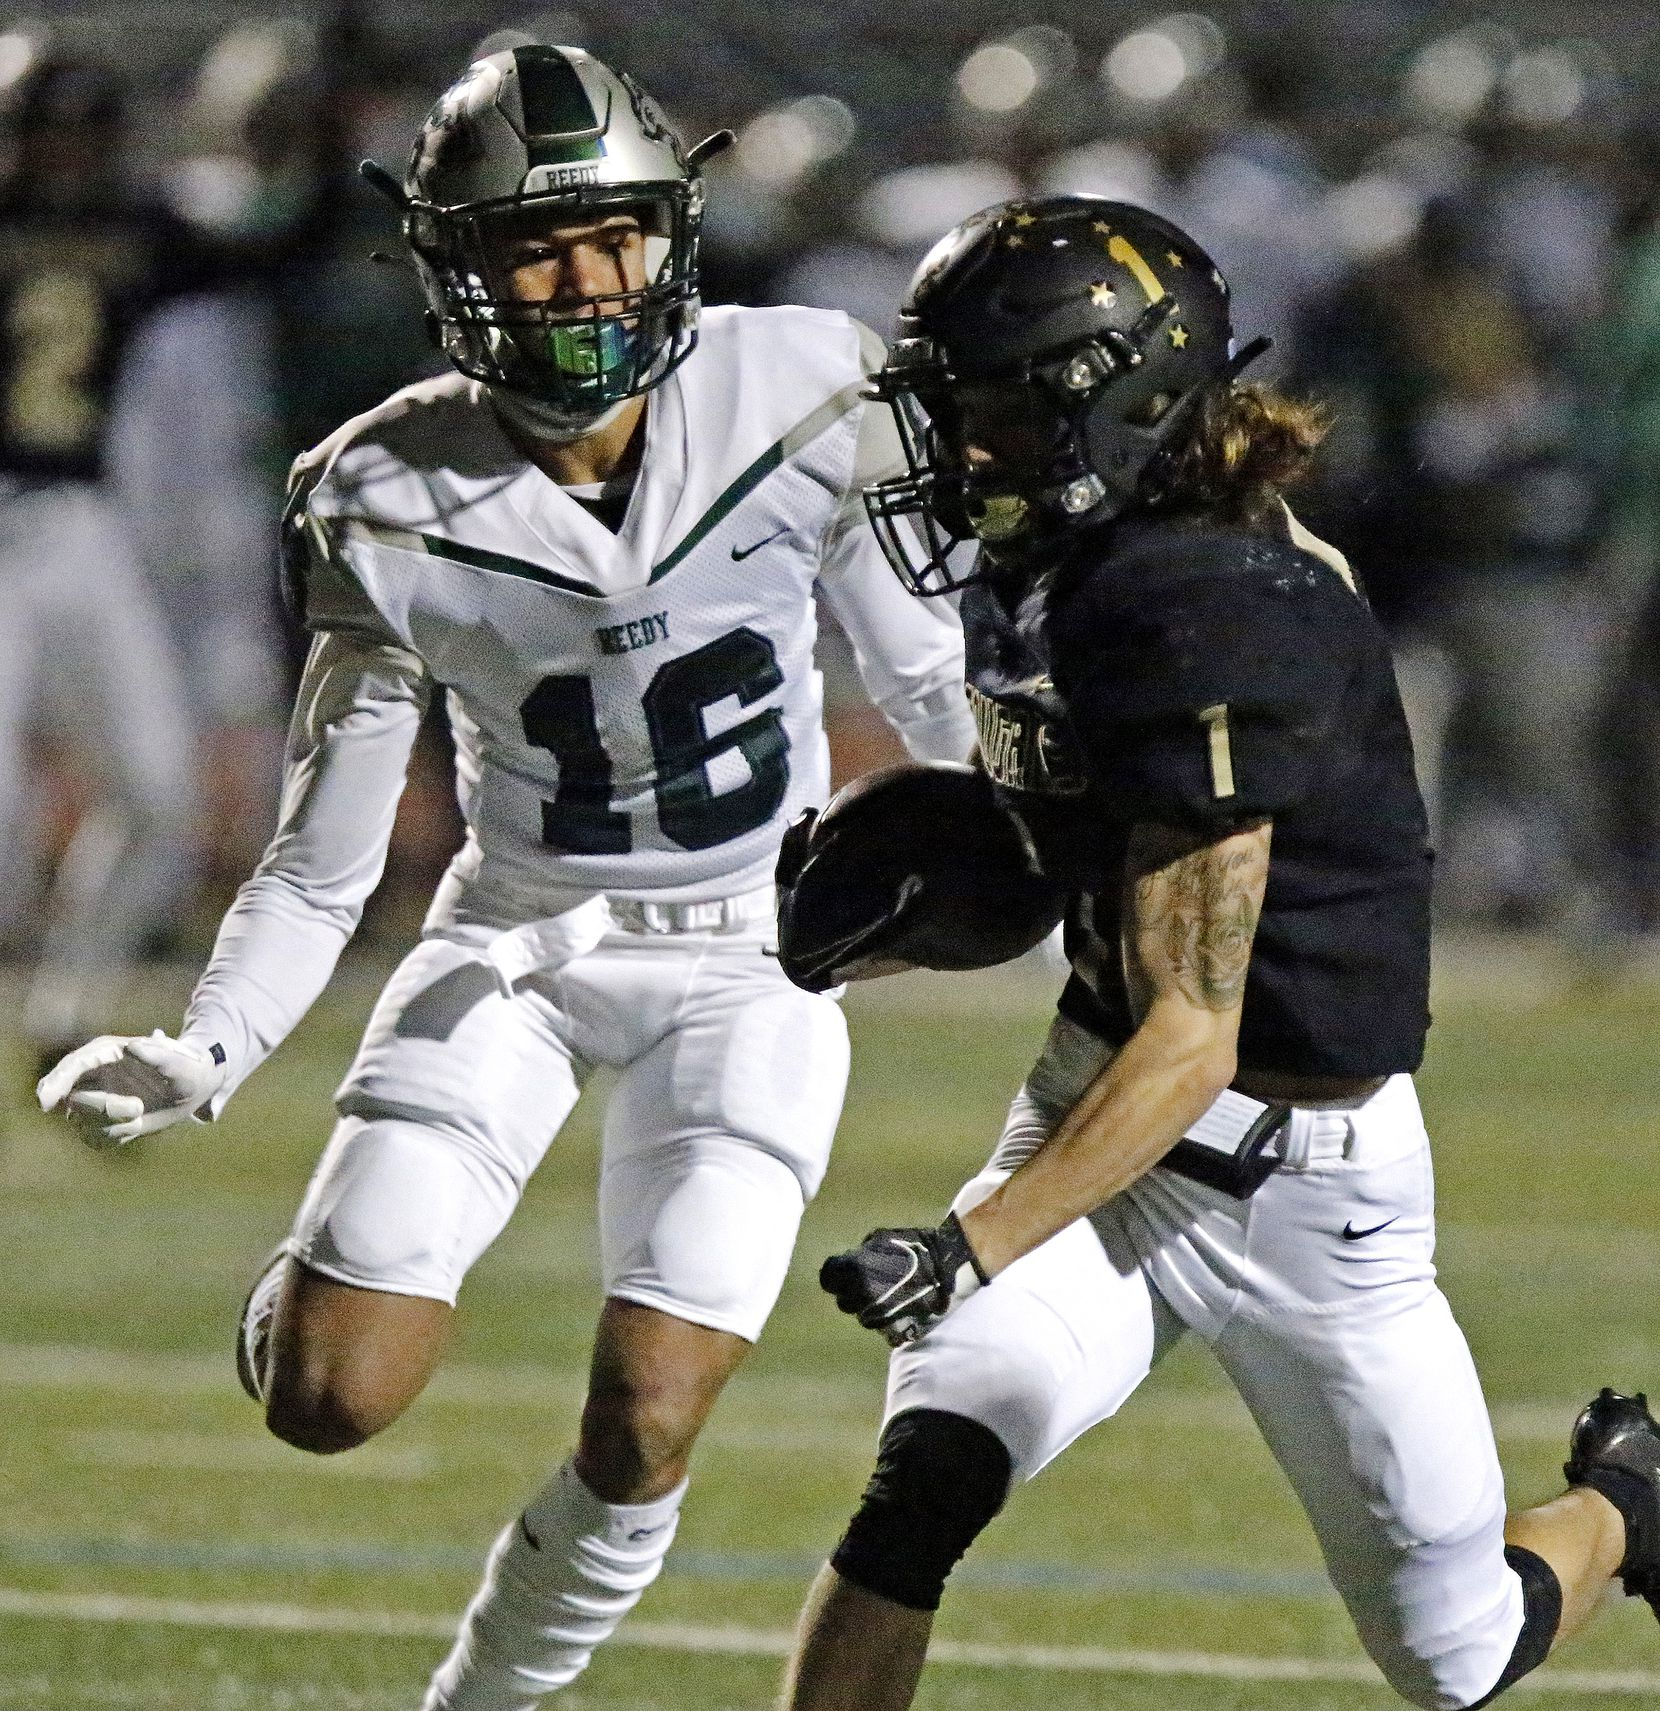 The Colony High School wide receiver Benji Nelson (1) out runs Reedy High School defensive back Jaylen Fuksa (16) during the first half as The Colony High School hosted Frisco Reedy High School at Tommy Briggs Stadium on Friday night, December 4, 2020.  (Stewart F. House/Special Contributor)